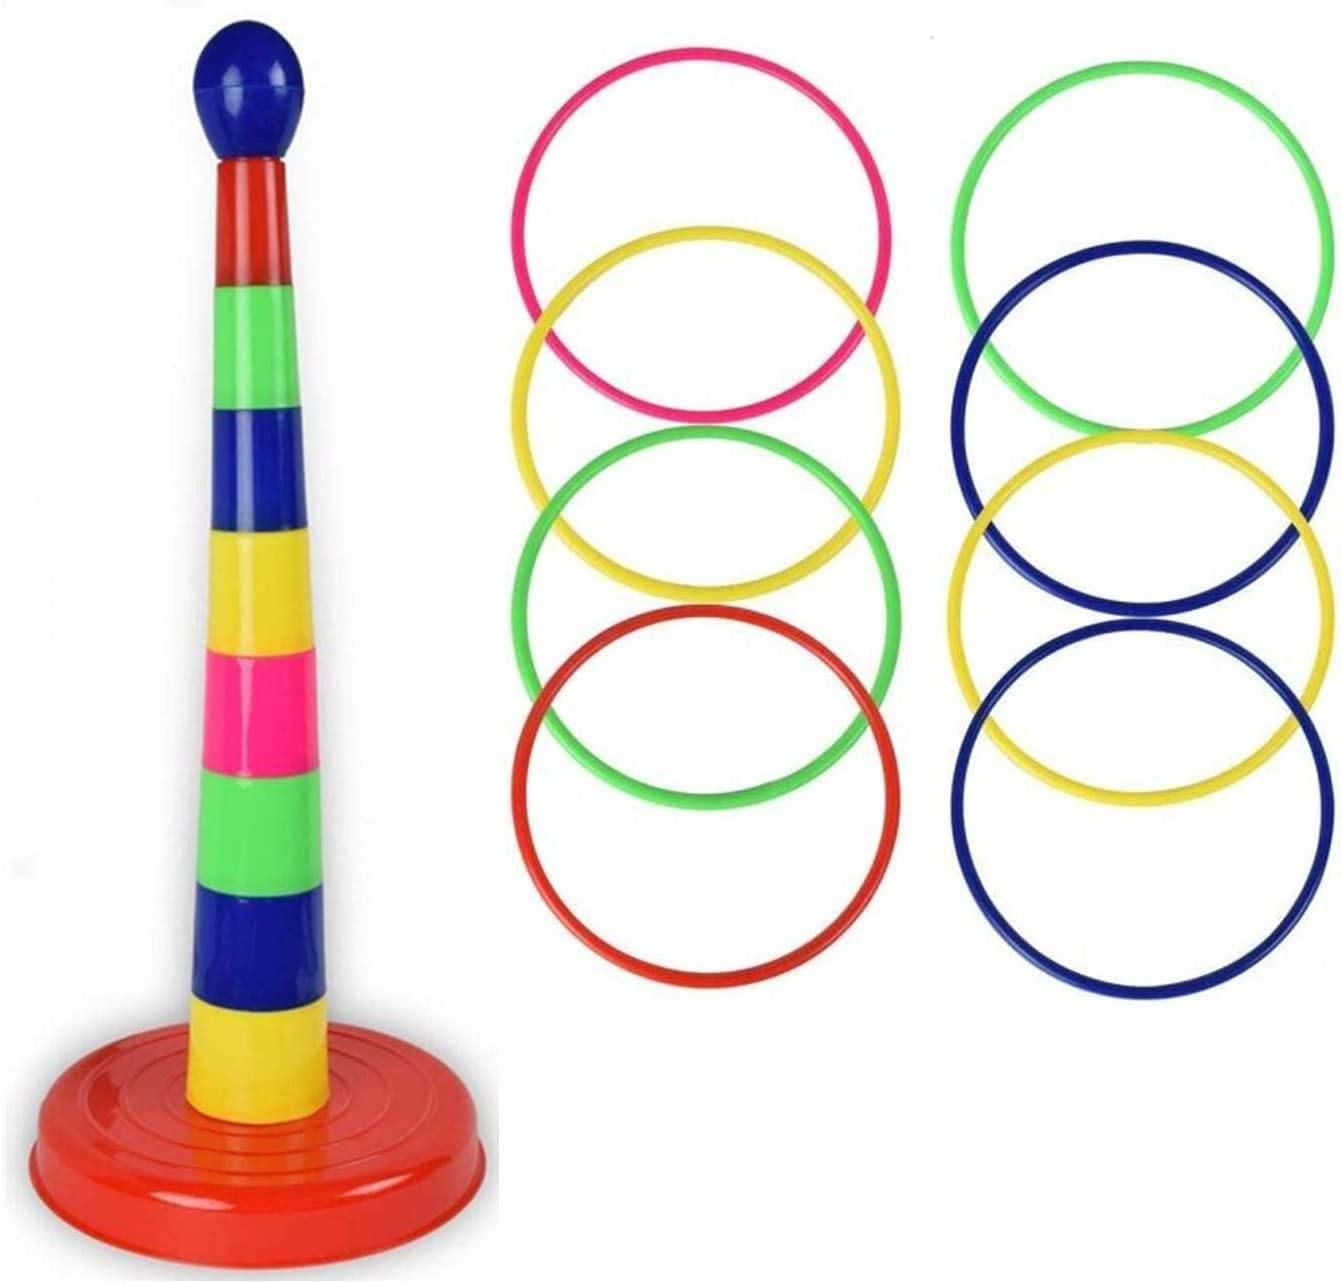 Ring Toss Game Outdoor Indoor Toss Rings Game Yard Games Lawn Games Carnival Games Ring Game for Kids Family Ring Toss Kids Outdoor Activities Ring Toss Rings Playground Toys Halloween Party Game